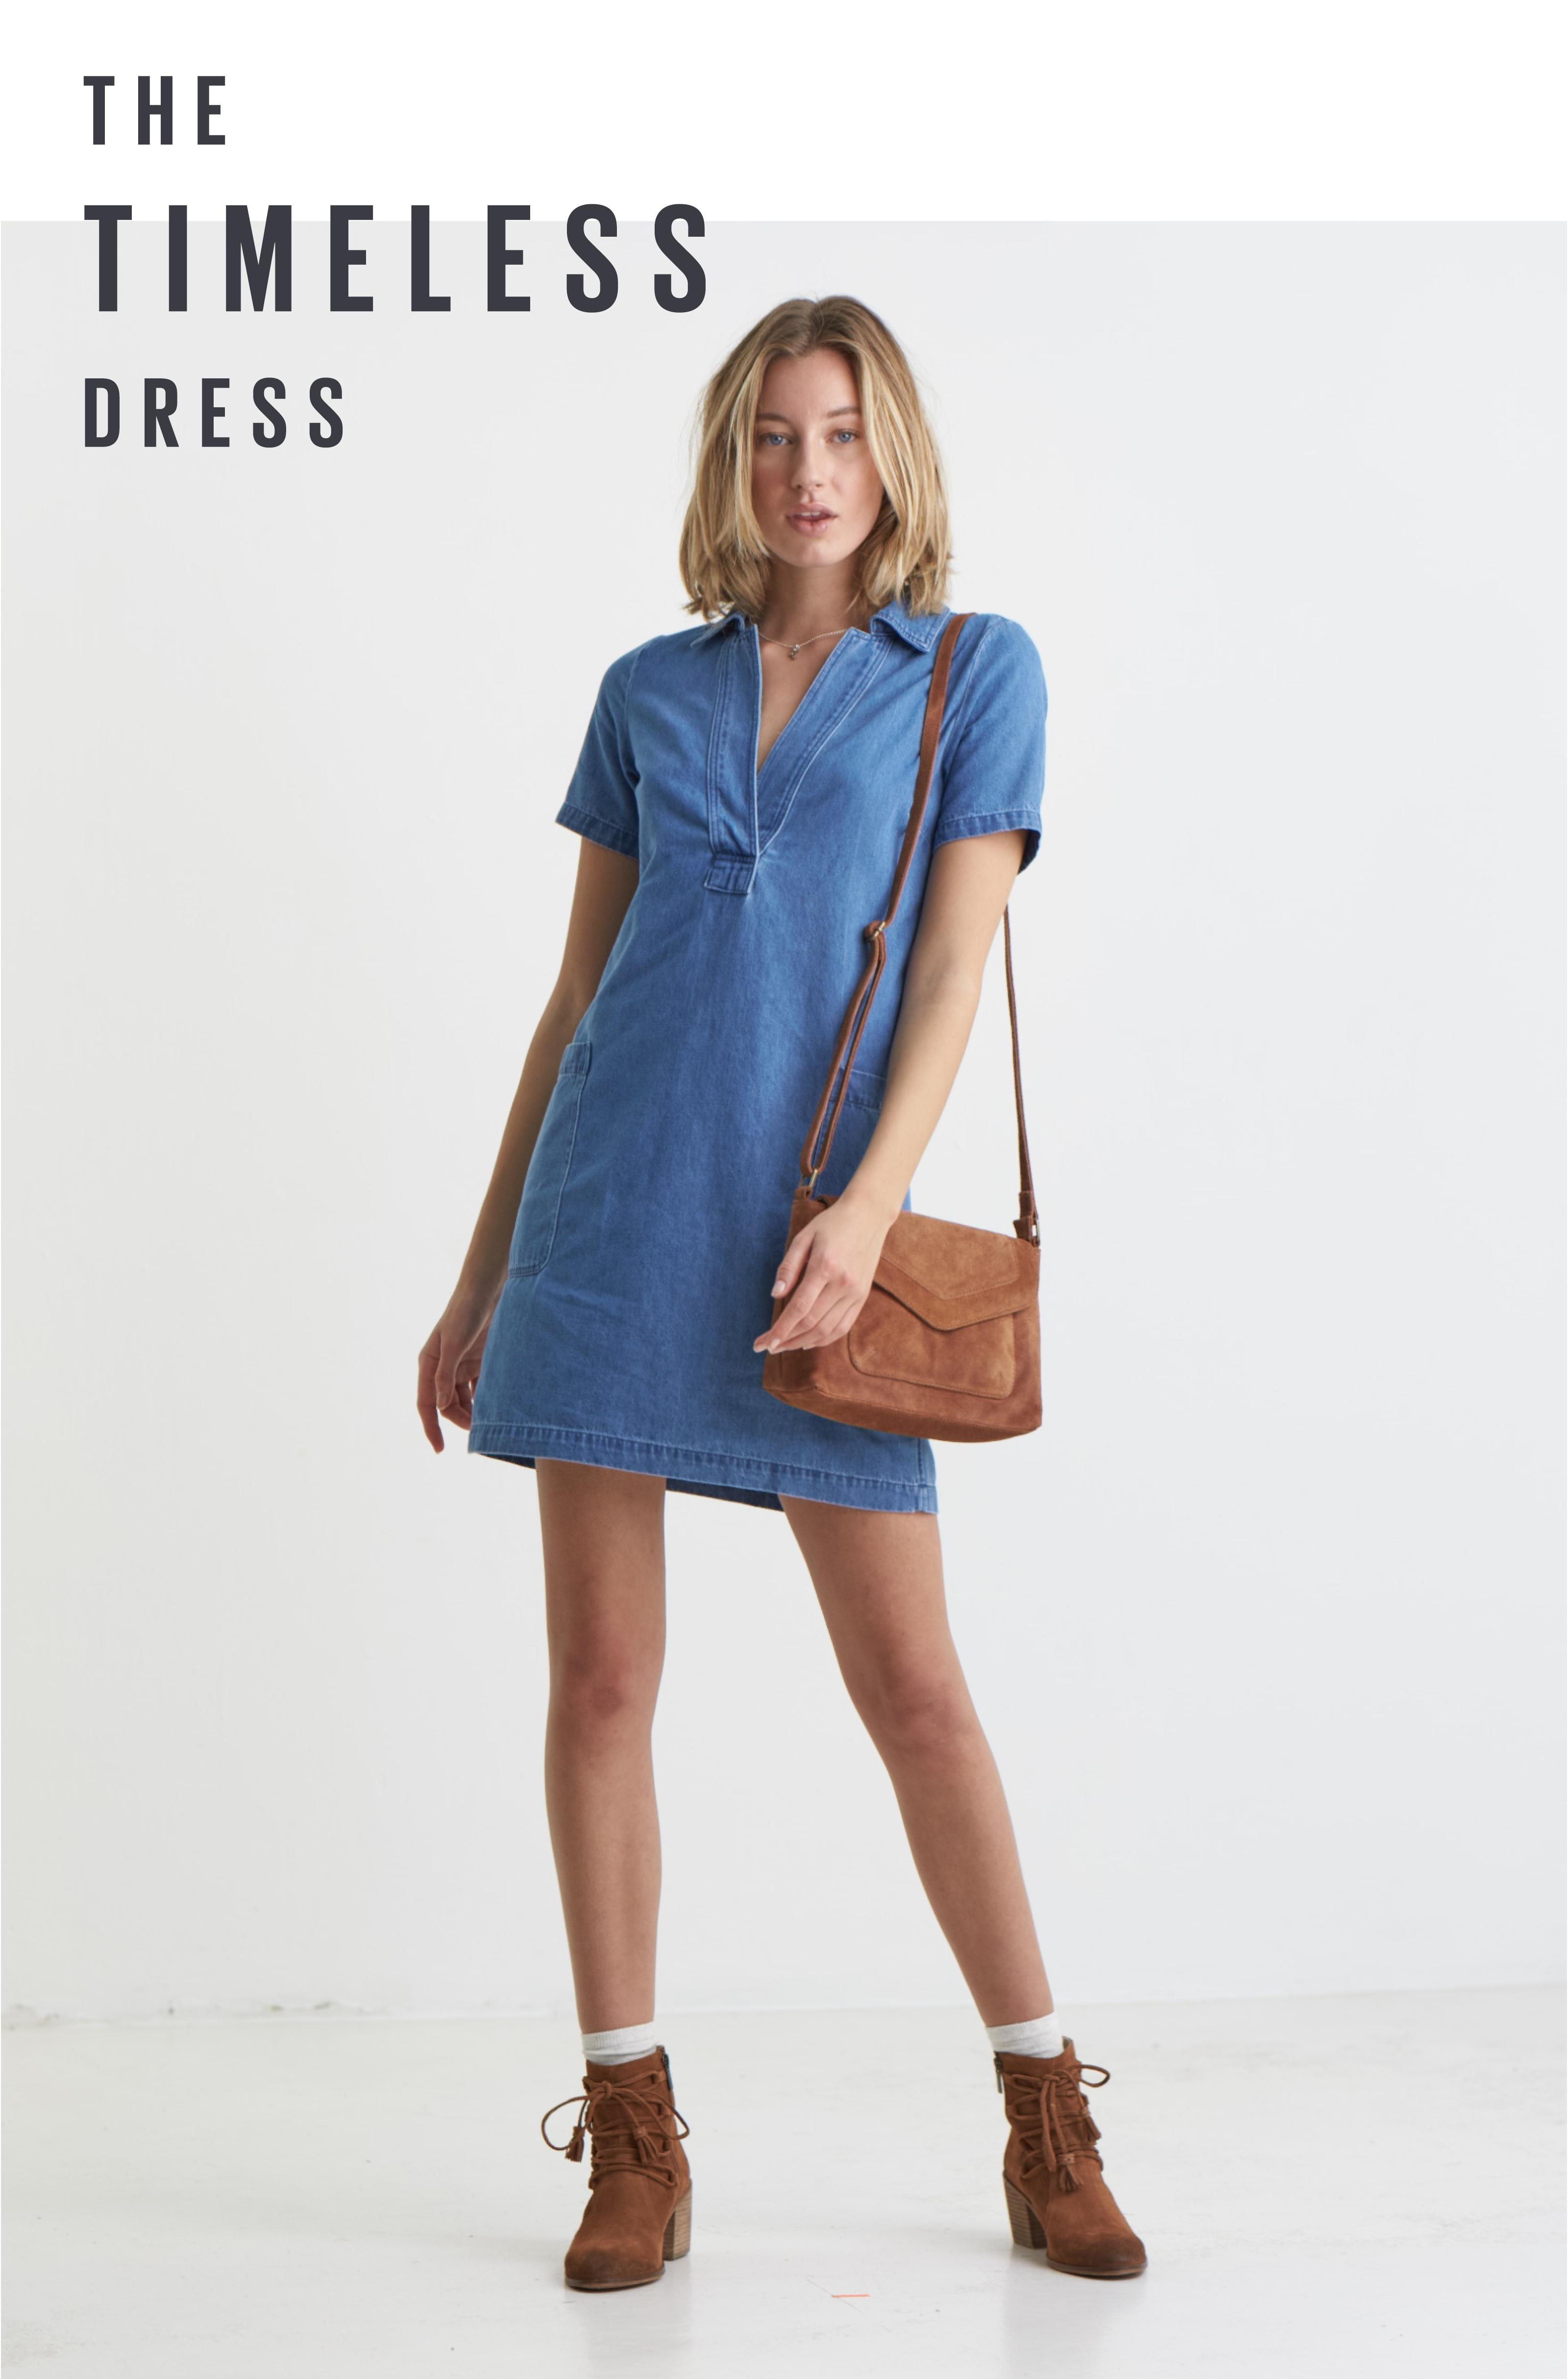 Female model wearing a denim blue dress with a brown leather bag and brown lace up boots.